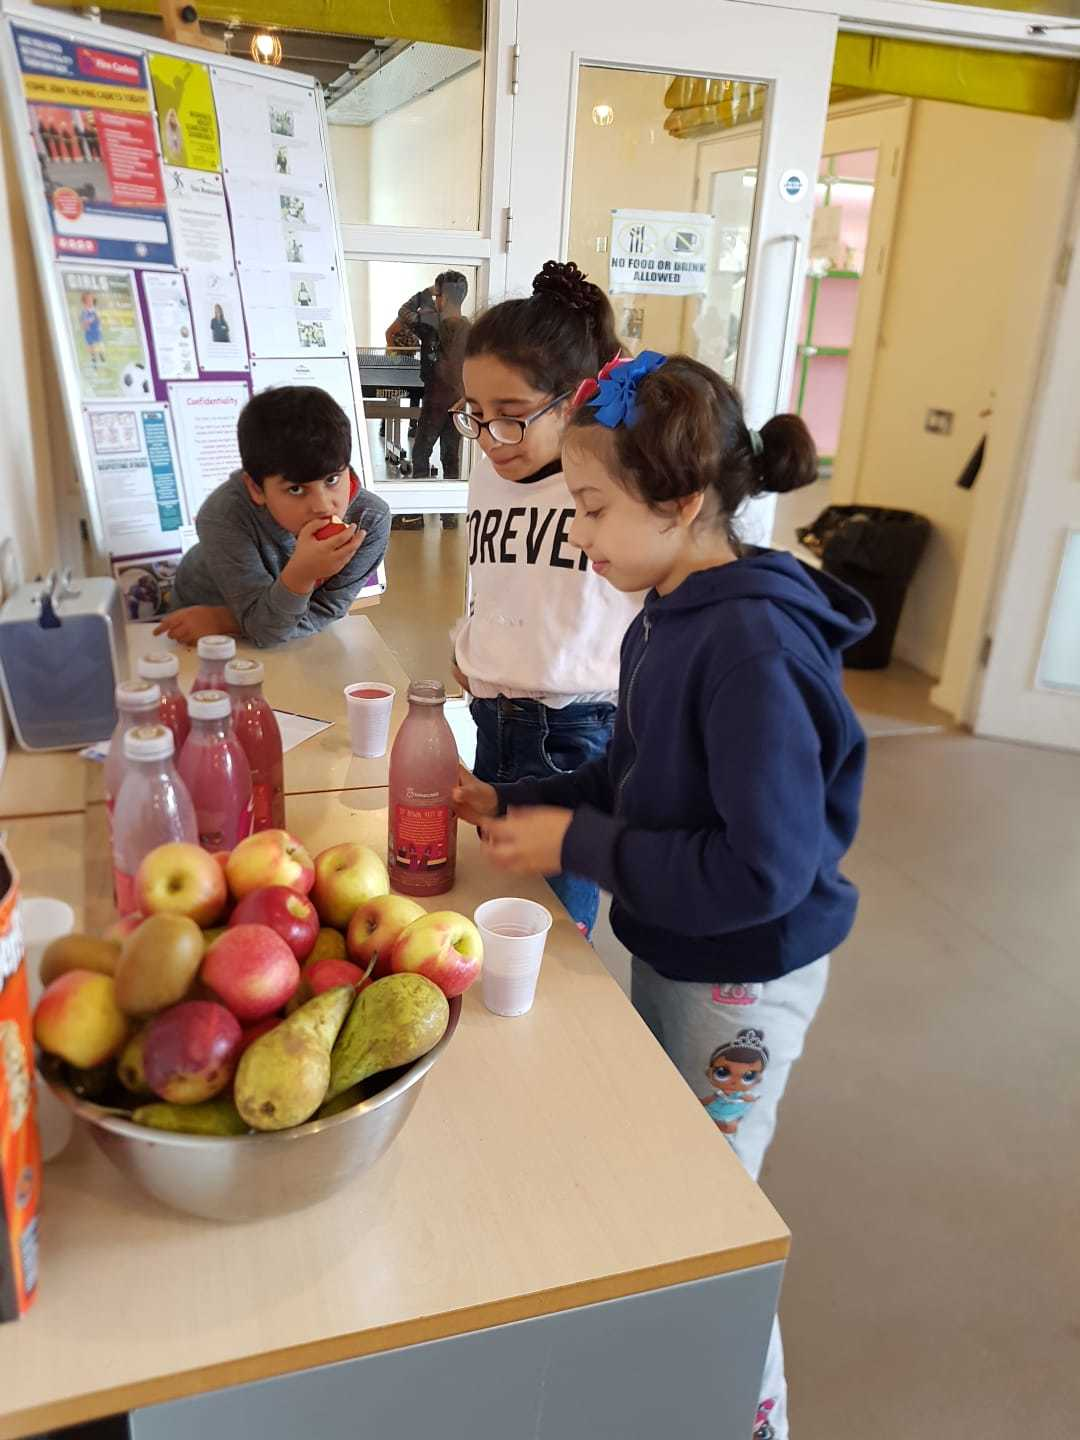 The Avenues introduced a breakfast bar for children during the school holidays with bread and fruit from The Felix Project